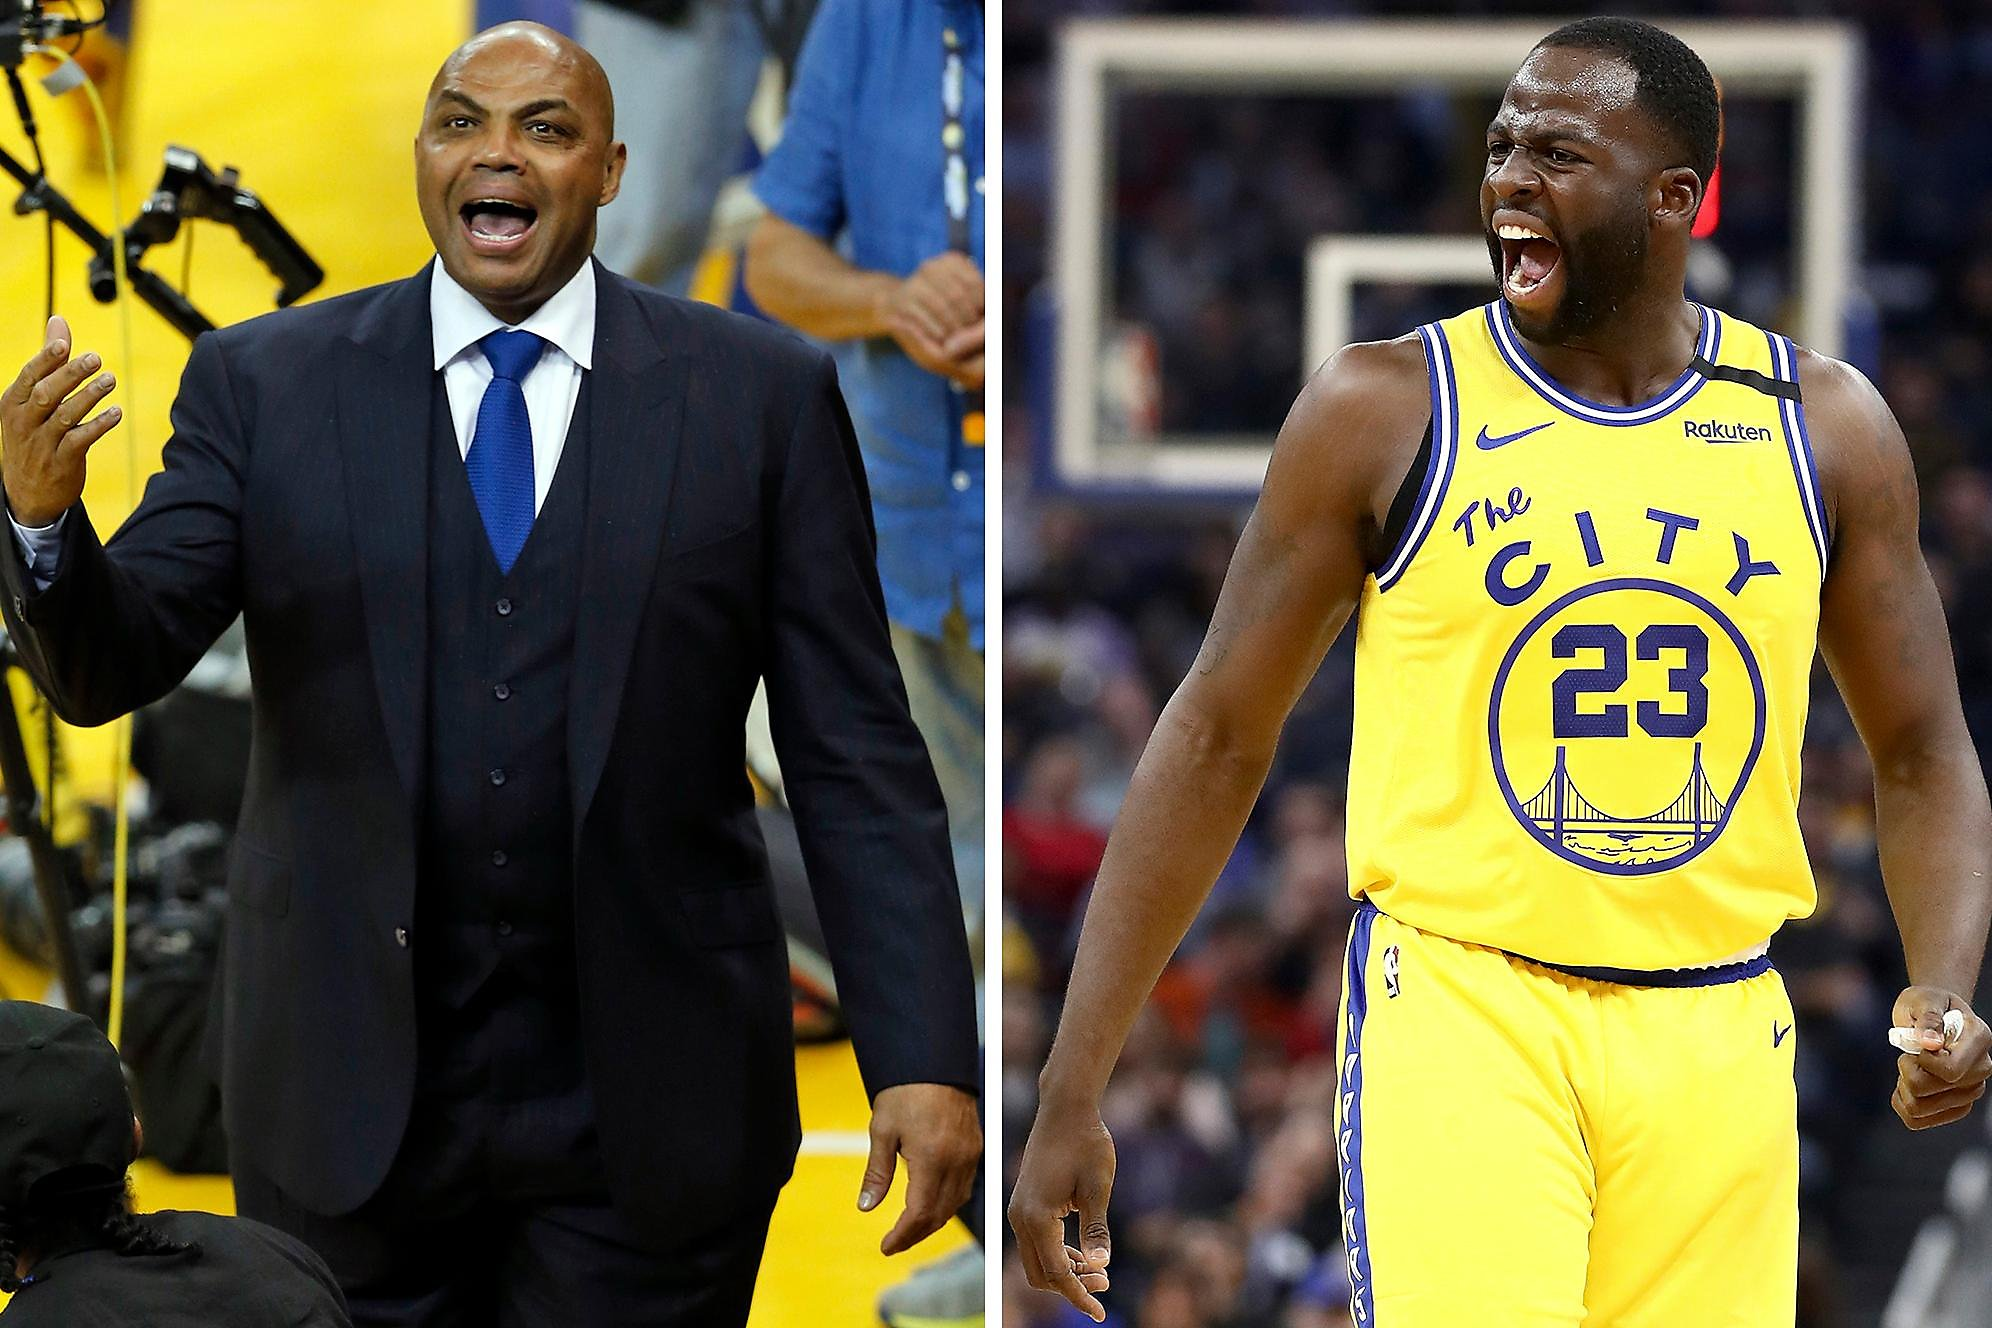 Barkley on Draymond Green: 'He's the least famous person in the boy band'